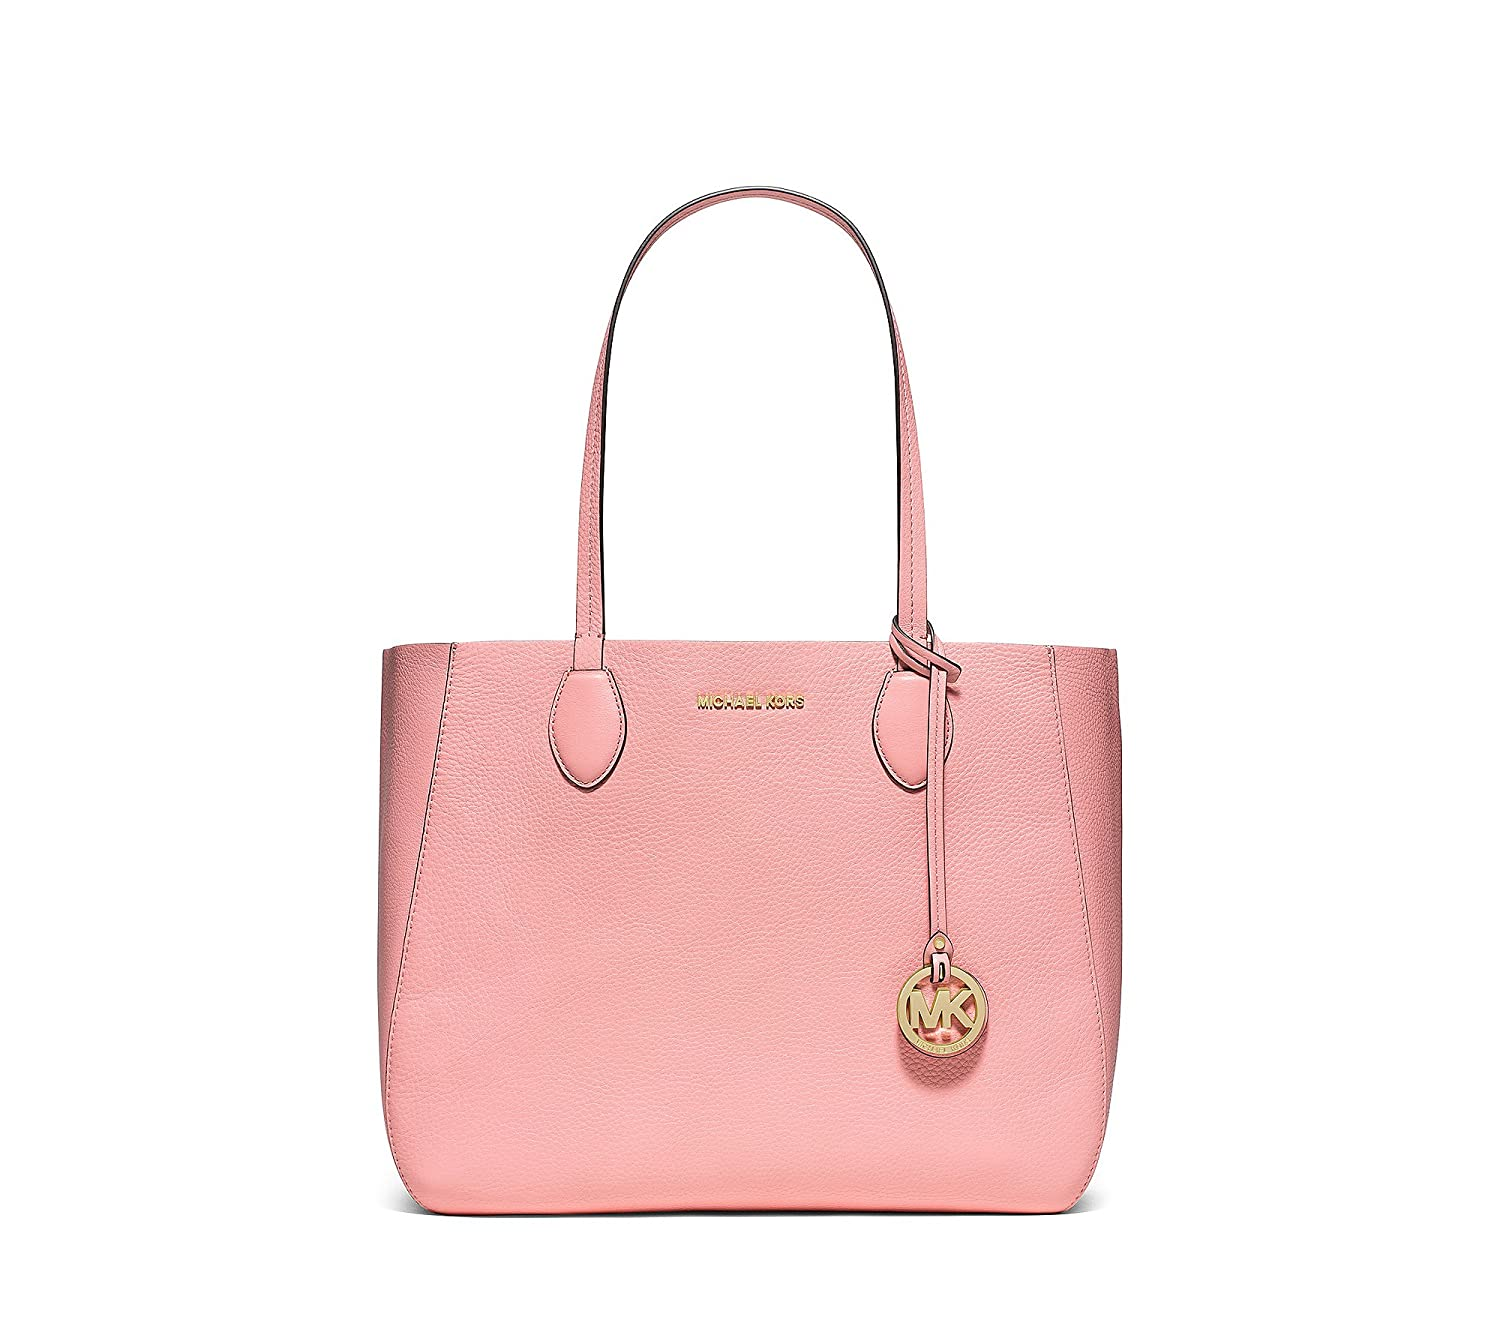 ab616eea5fc8 Amazon.com: MICHAEL KORS Mae Large Leather Tote in Pink Coral Reef: Shoes